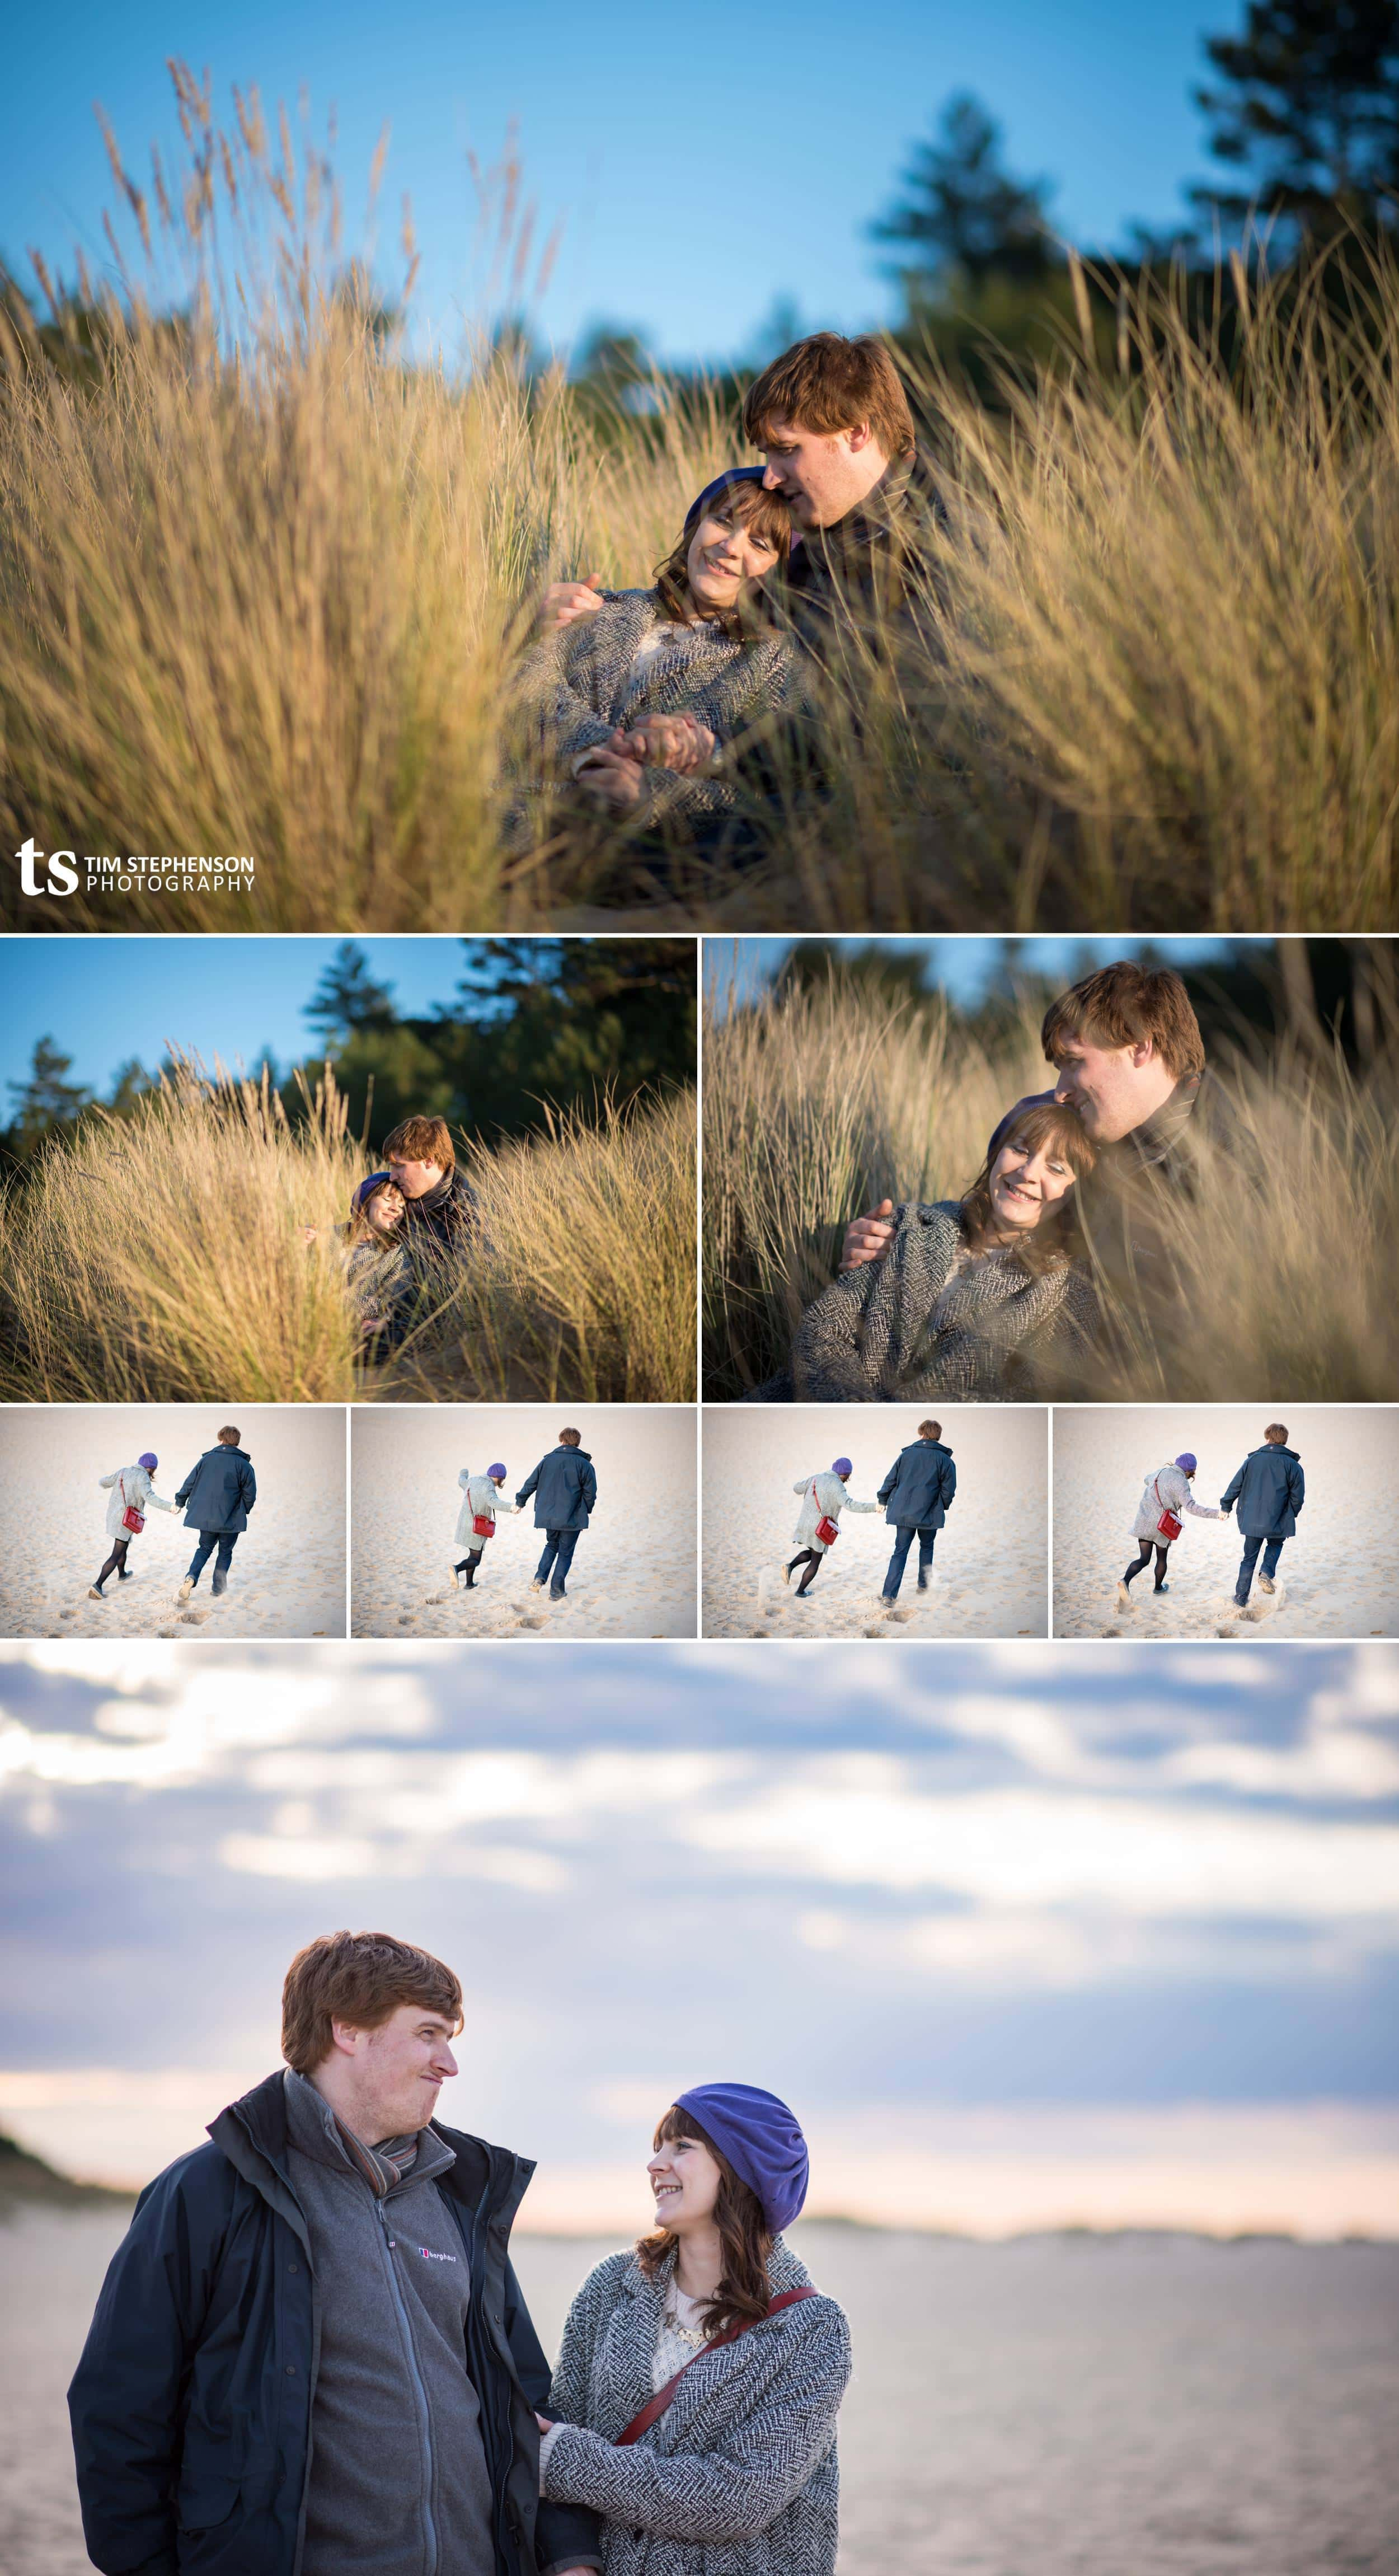 Rosie-Ben-Norfolk-Engagement-Photography 5